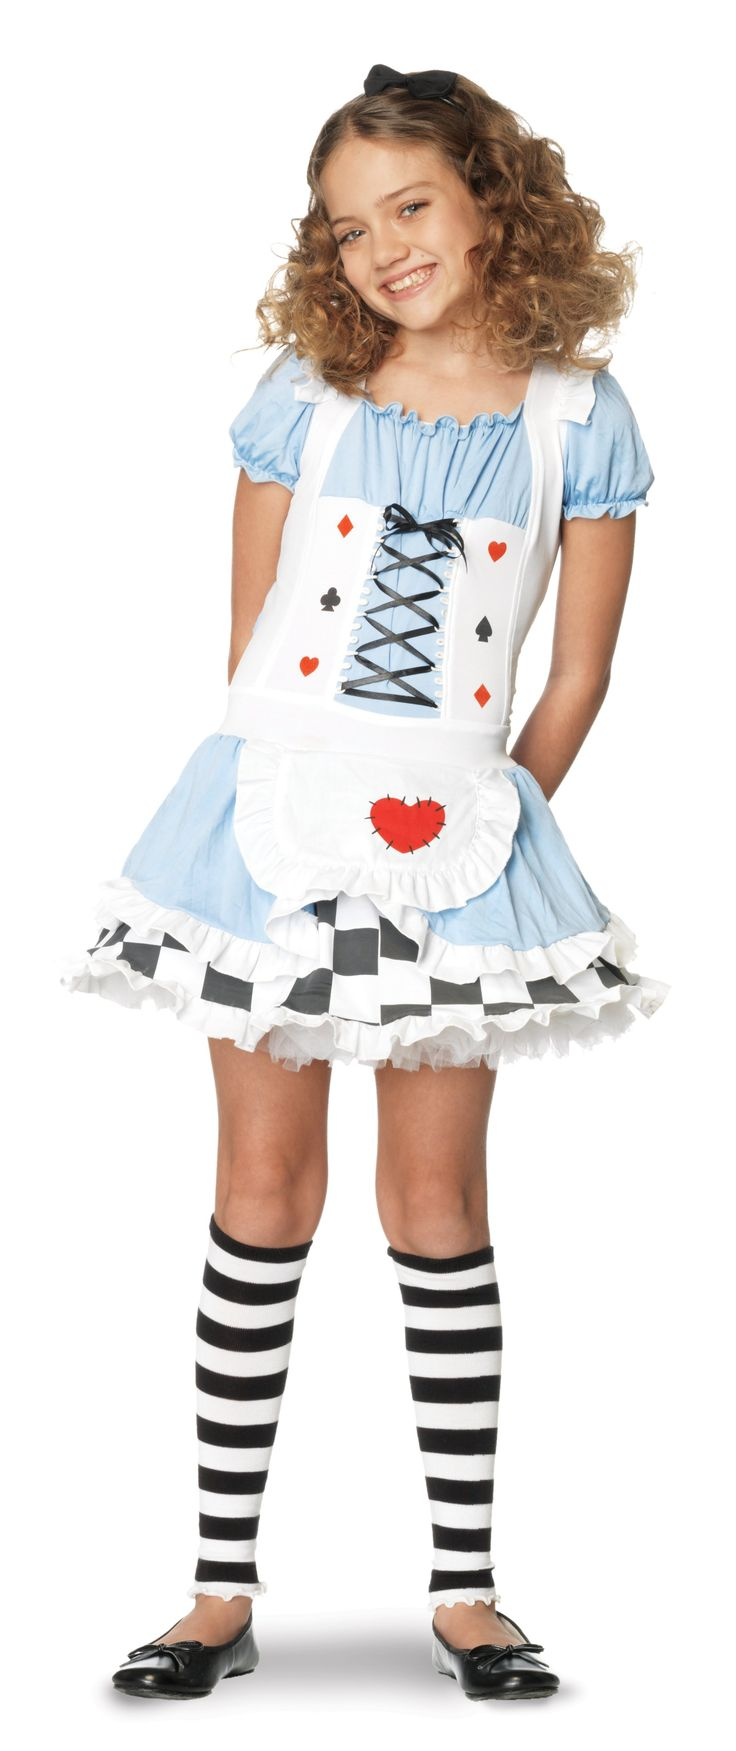 The 38 best images about Halloween Costumes For Kids on Pinterest ...